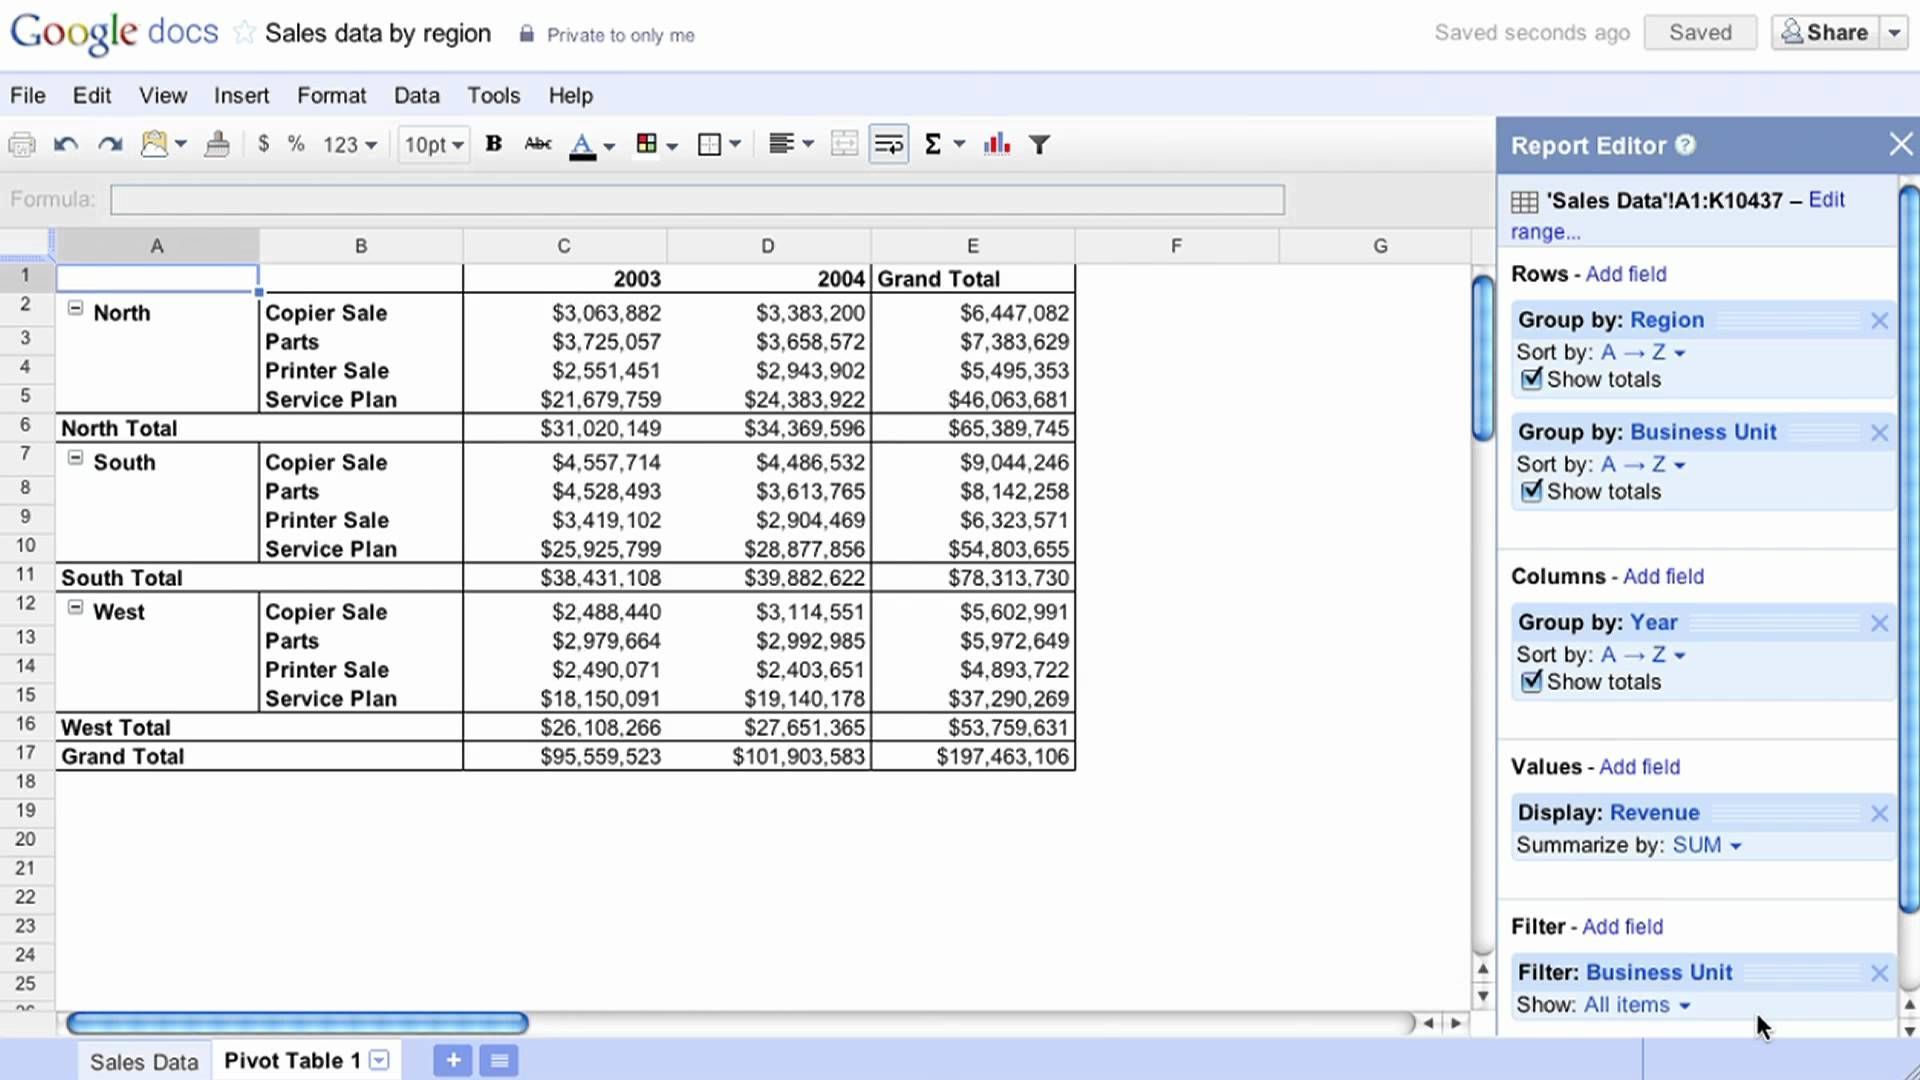 Pivot tables are now available in Google Docs. Pivot tables make it easy to process and summarize large data sets in seconds. http://docs.google.com